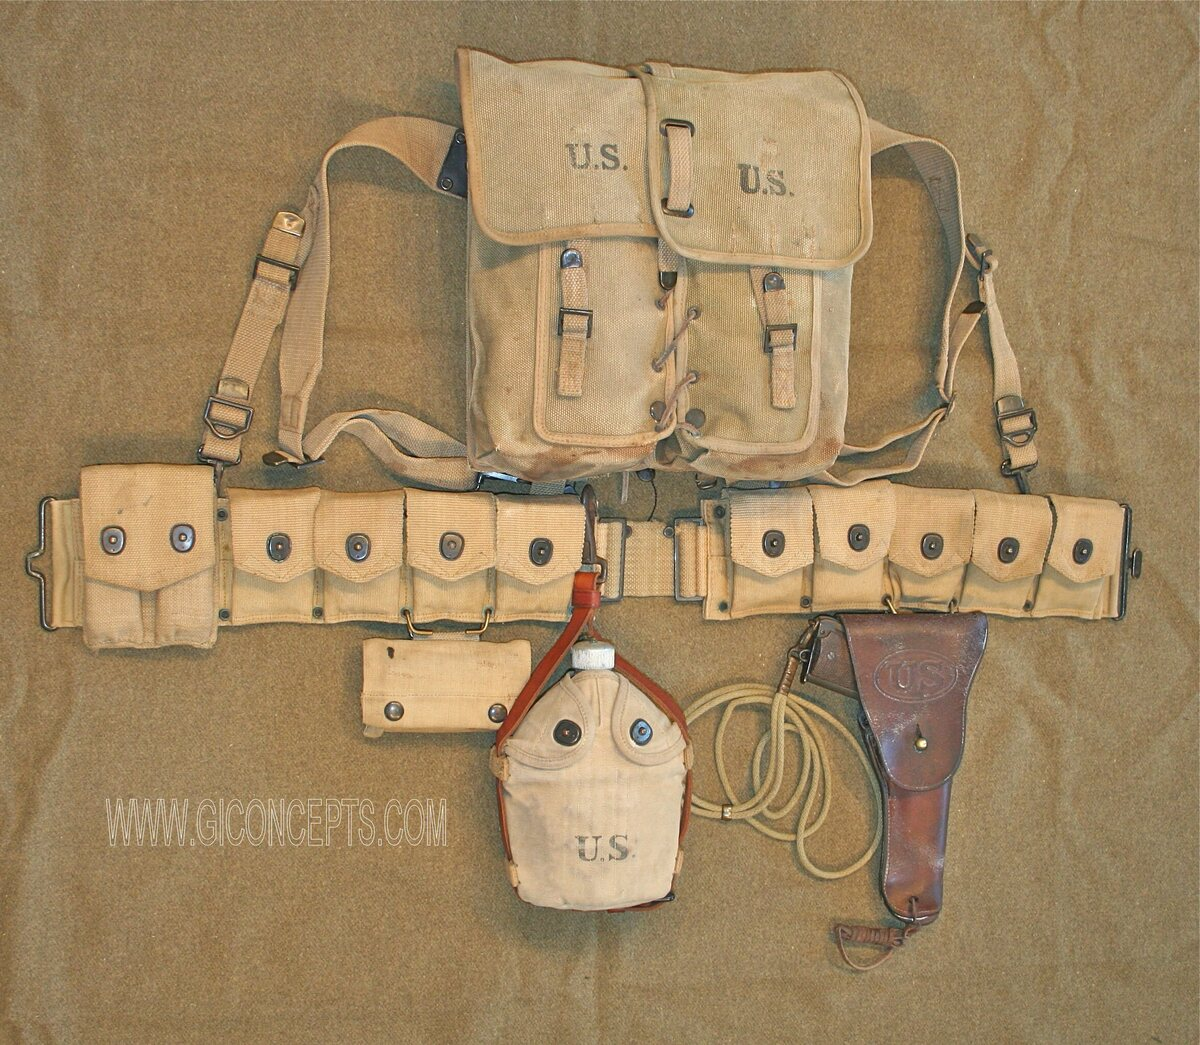 1918 US Army Dismounted Cavalry Equipment